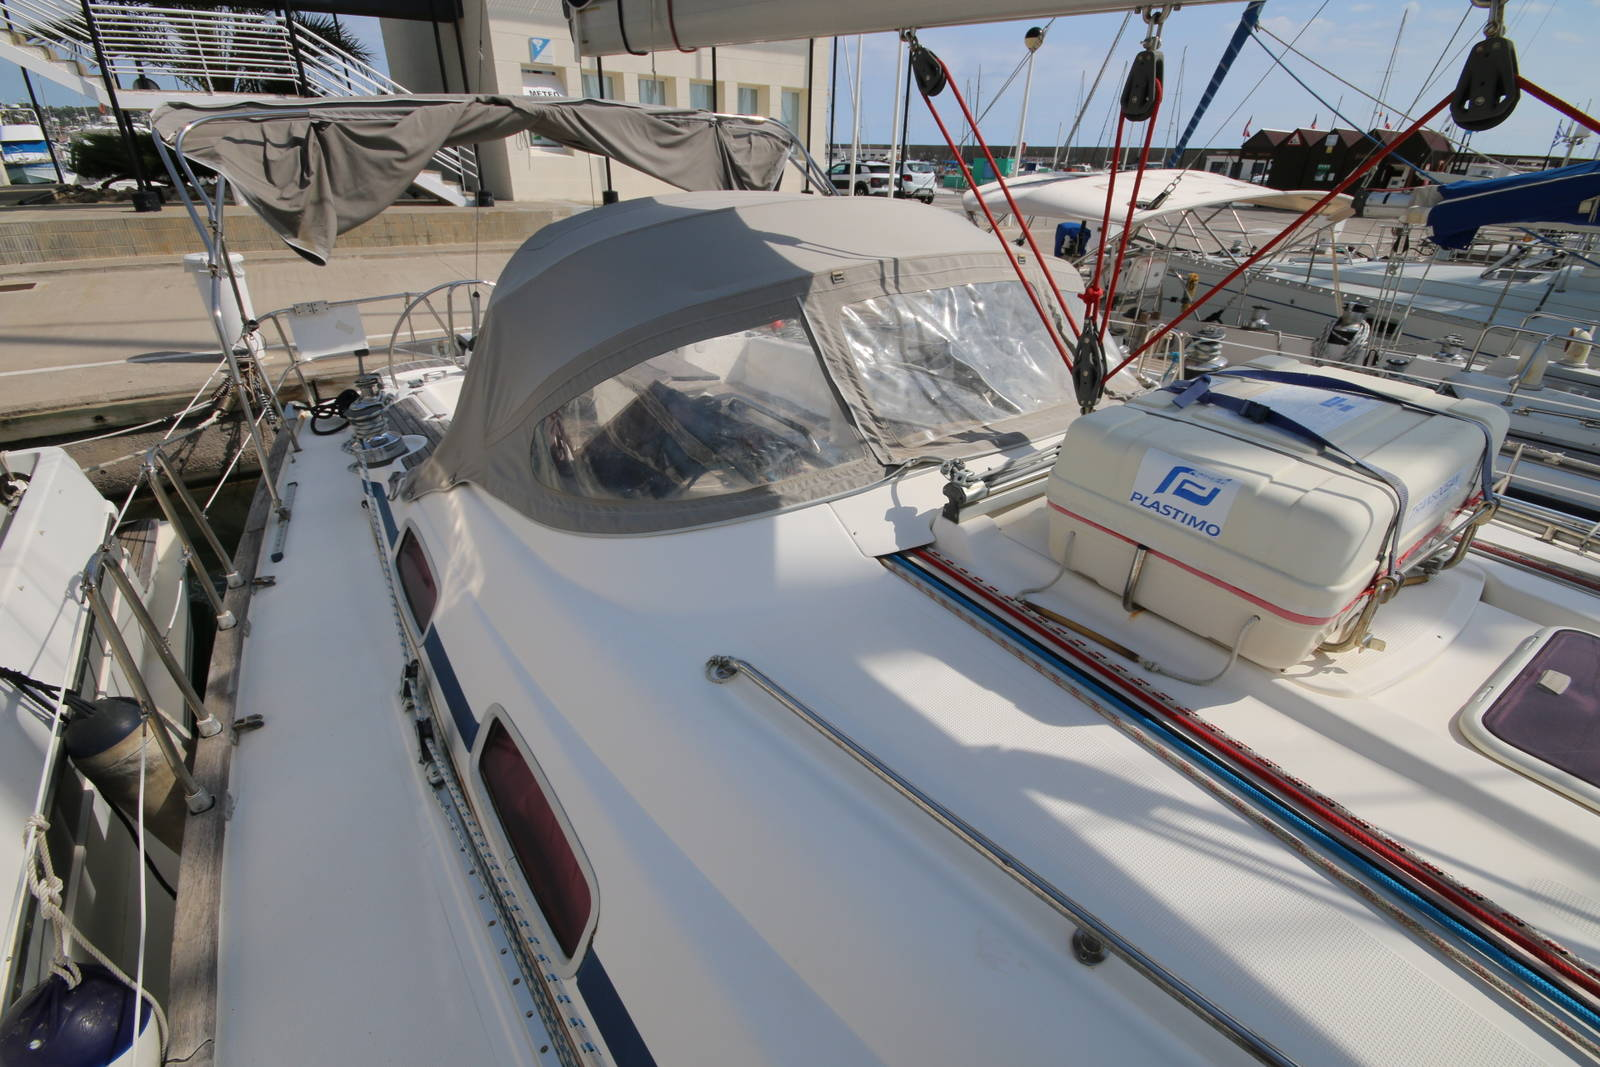 Bavaria 46 Yacht Deck on Boat 1